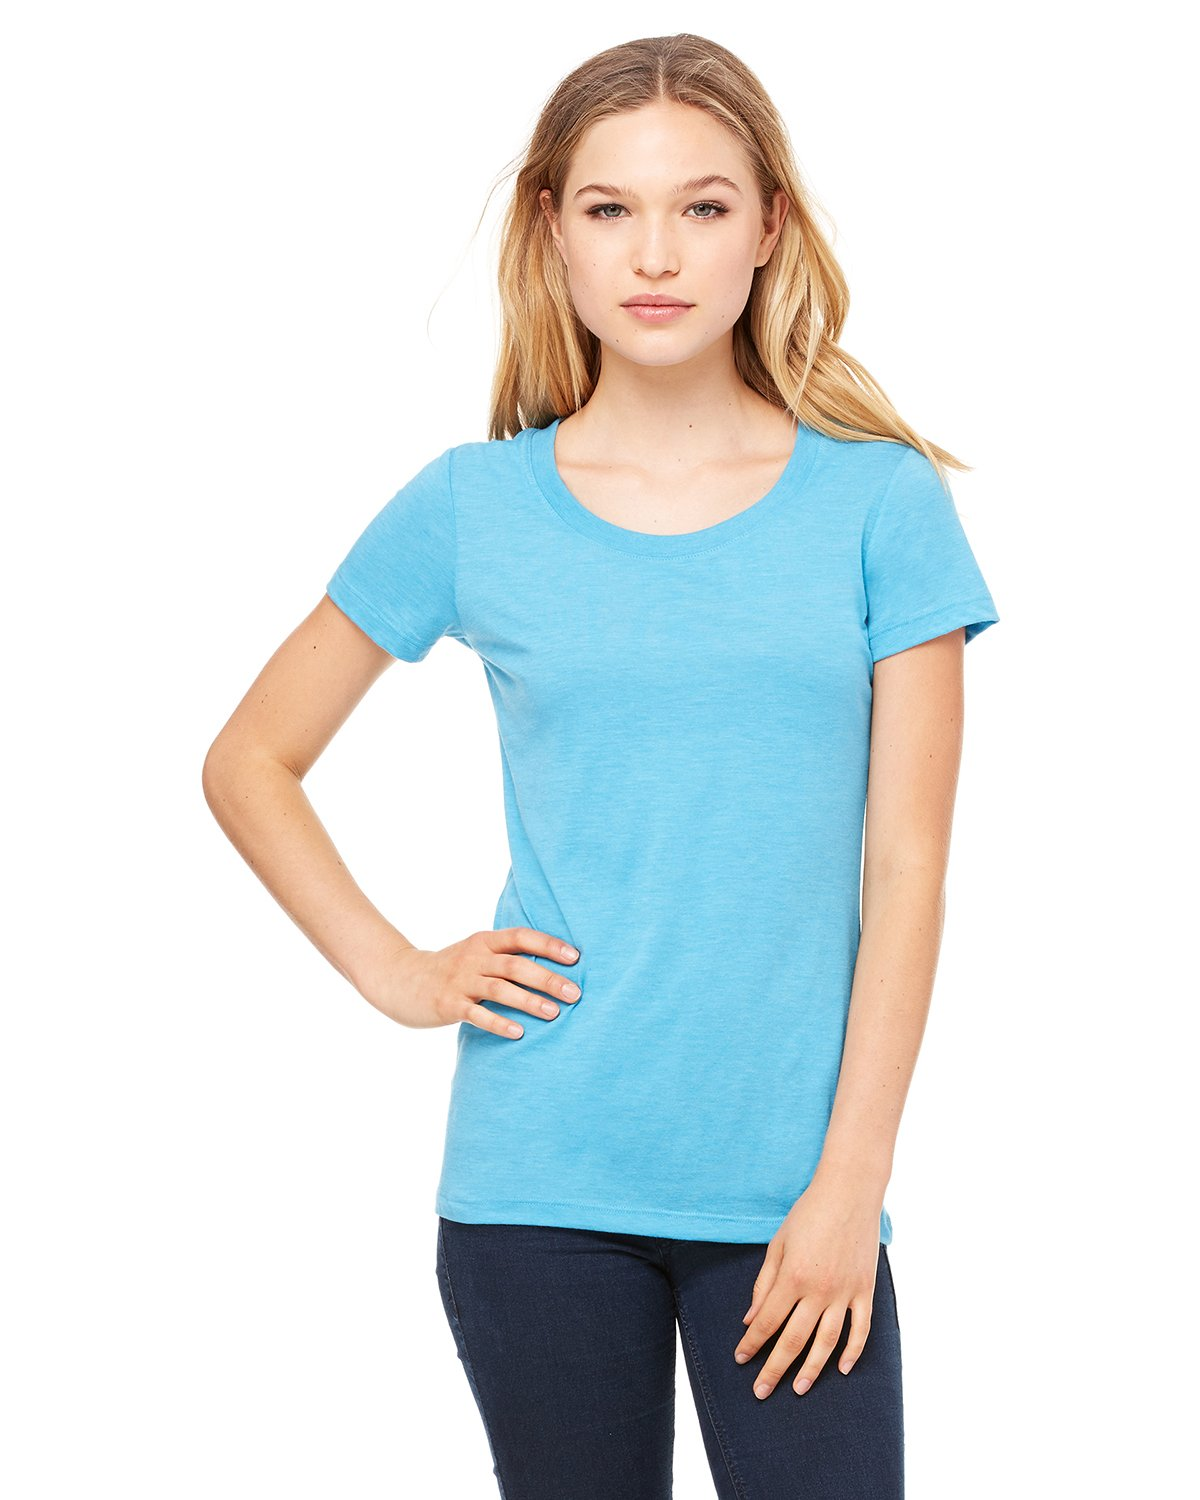 Bella + Canvas - B8413 - Ladies' Triblend Short-Sleeve T-Shirt